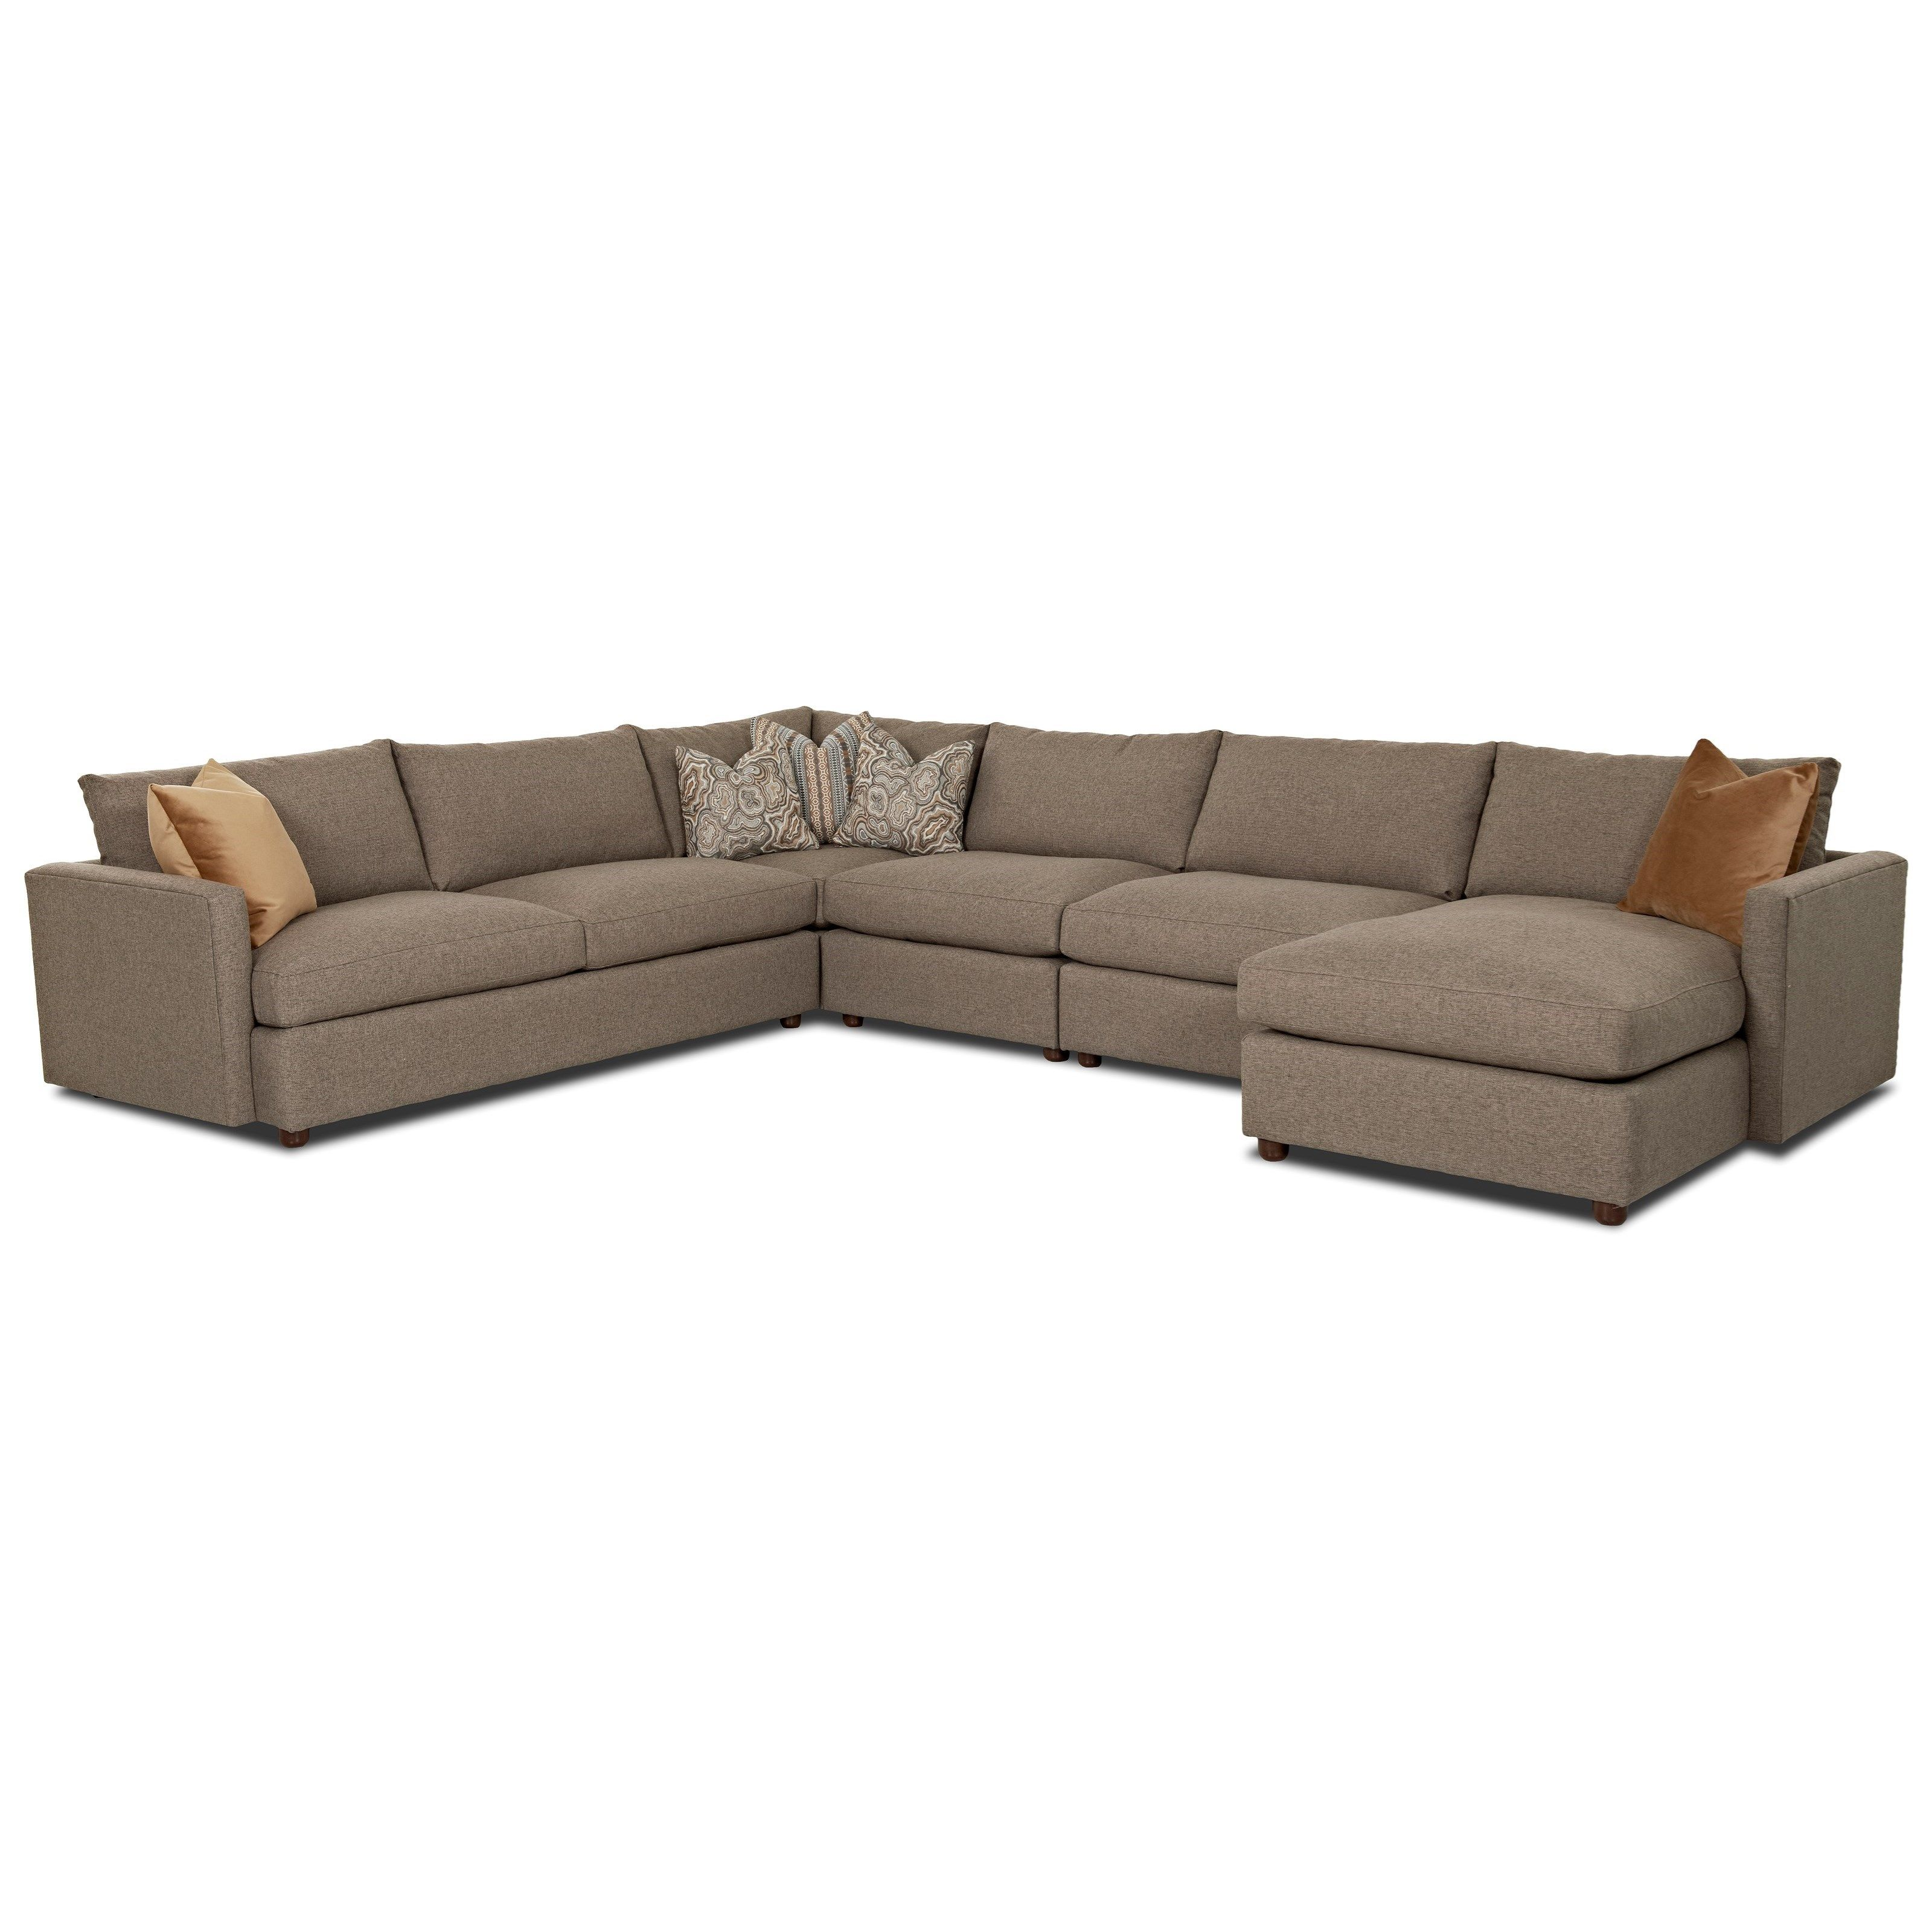 Leisure Sectional Sofa by Klaussner Sun Room